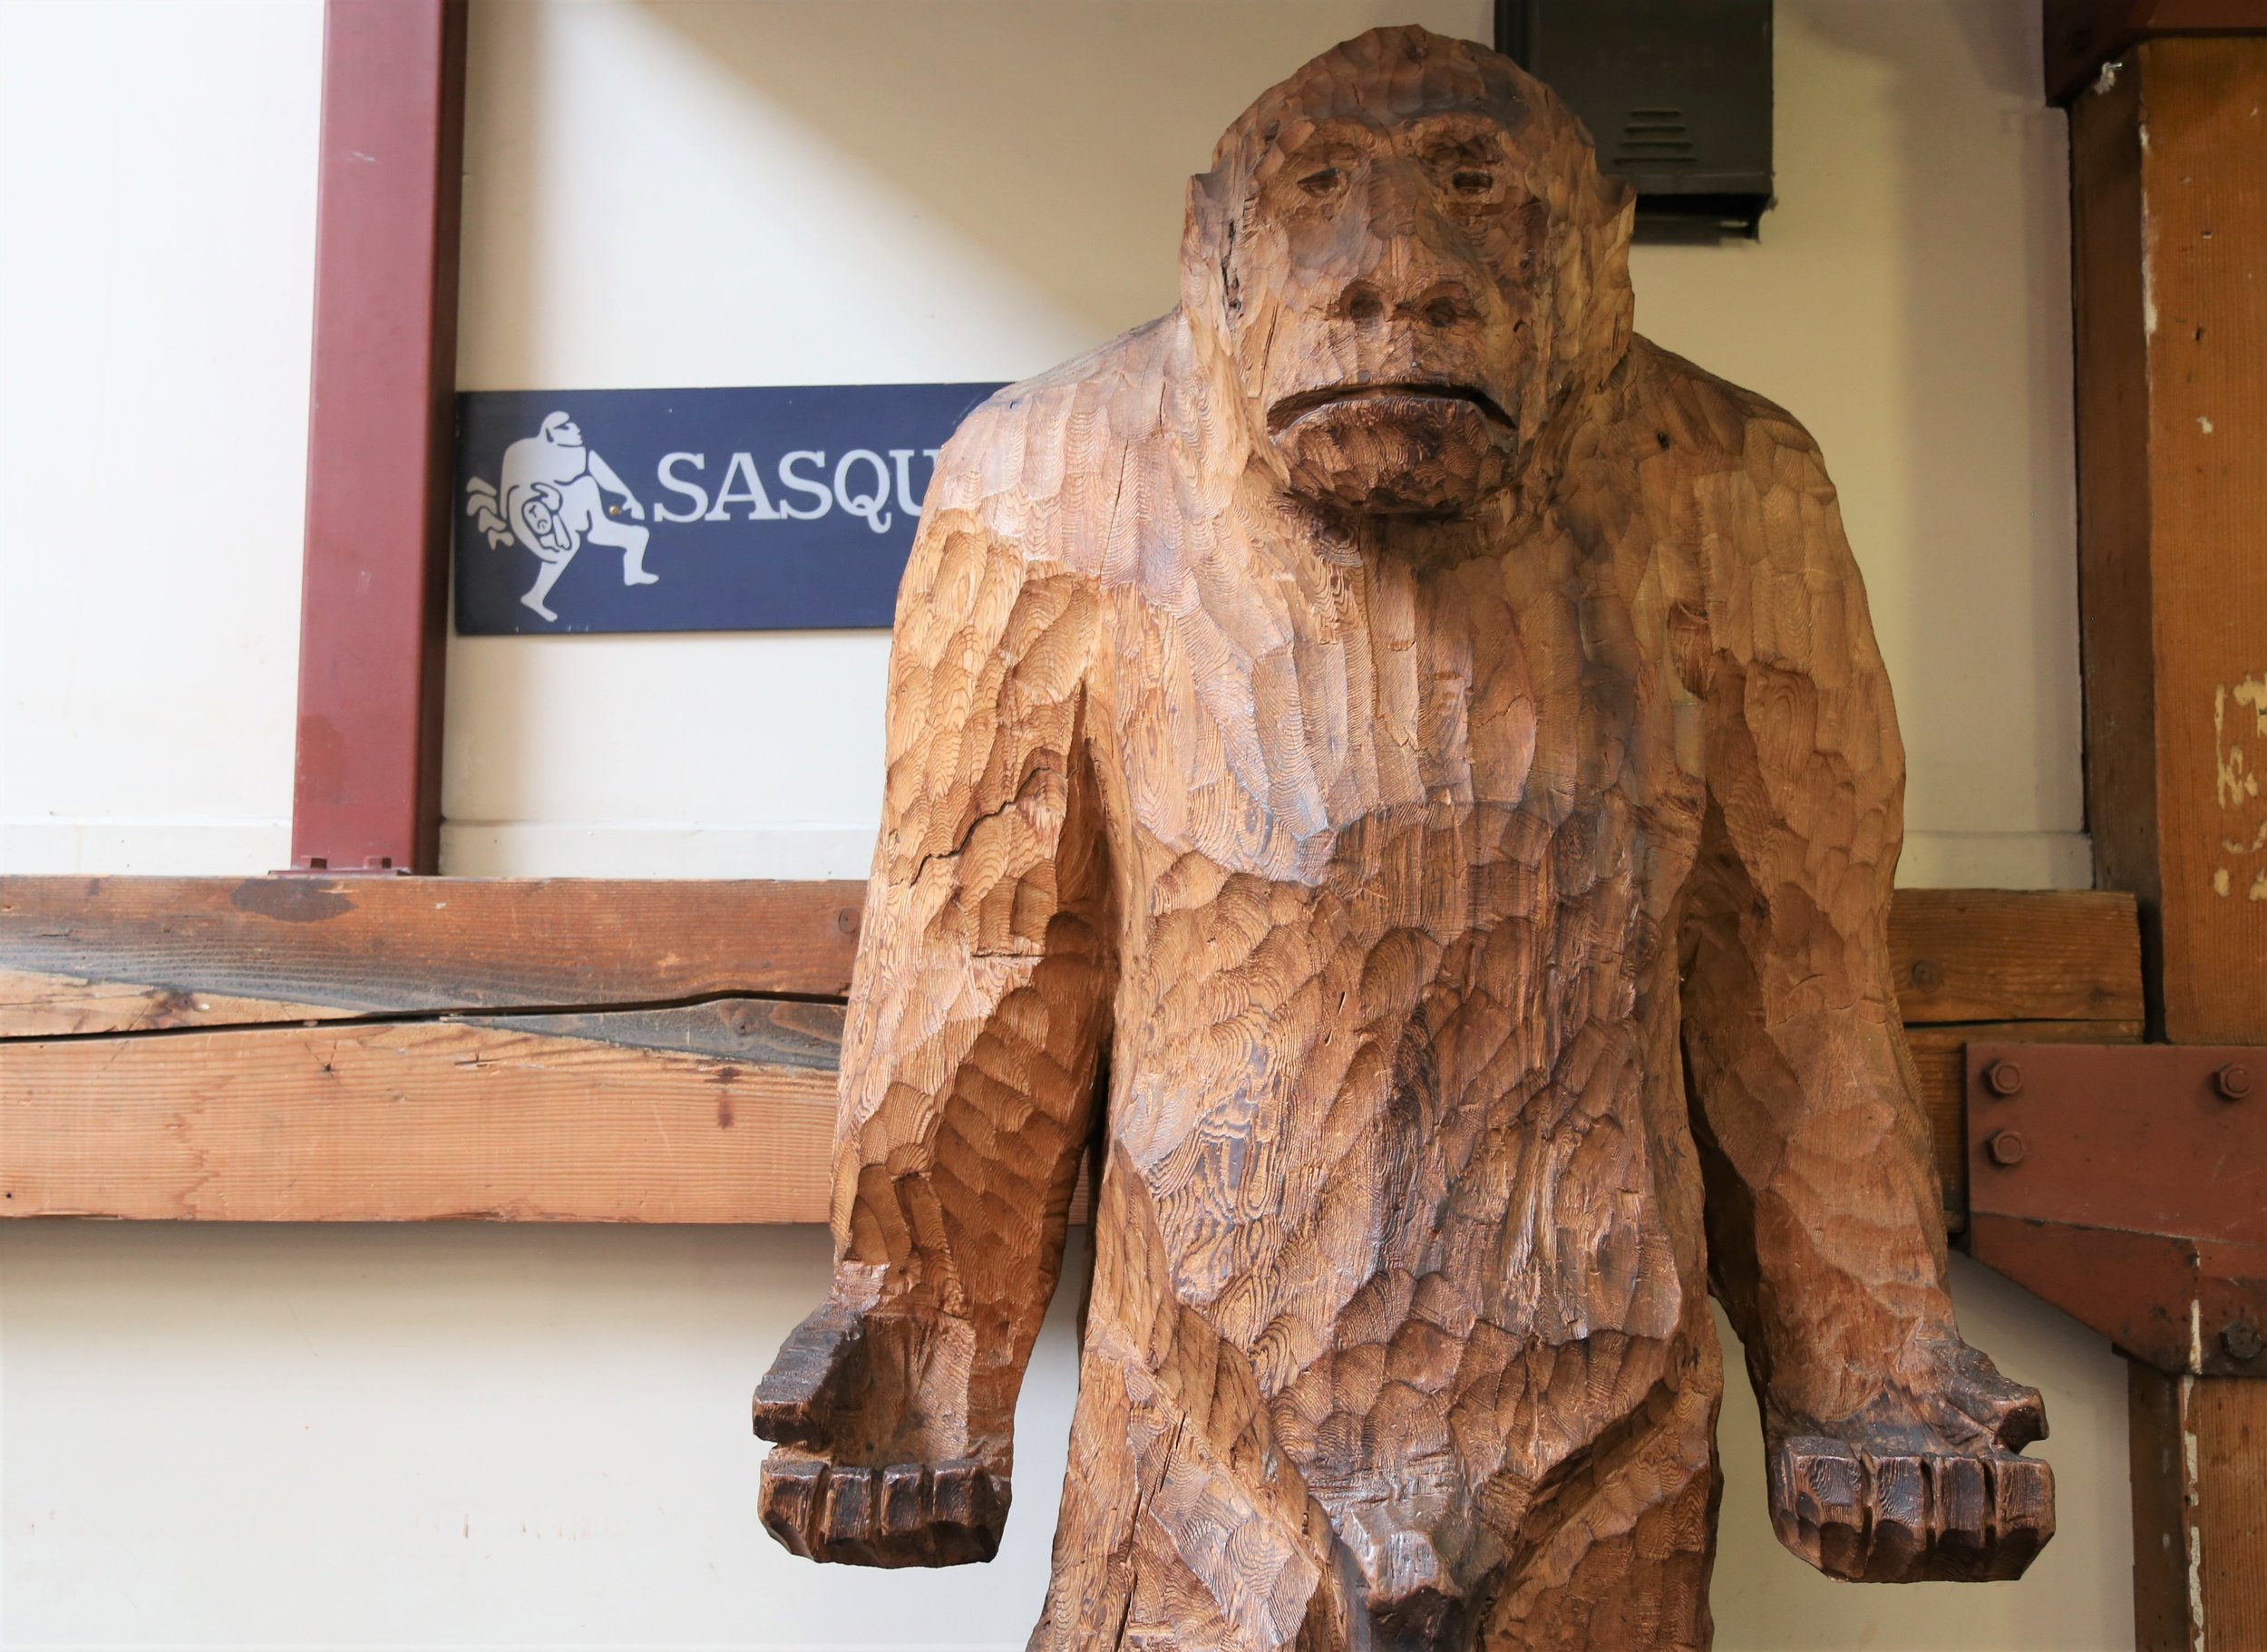 Eat lunch with a giant Sasquatch